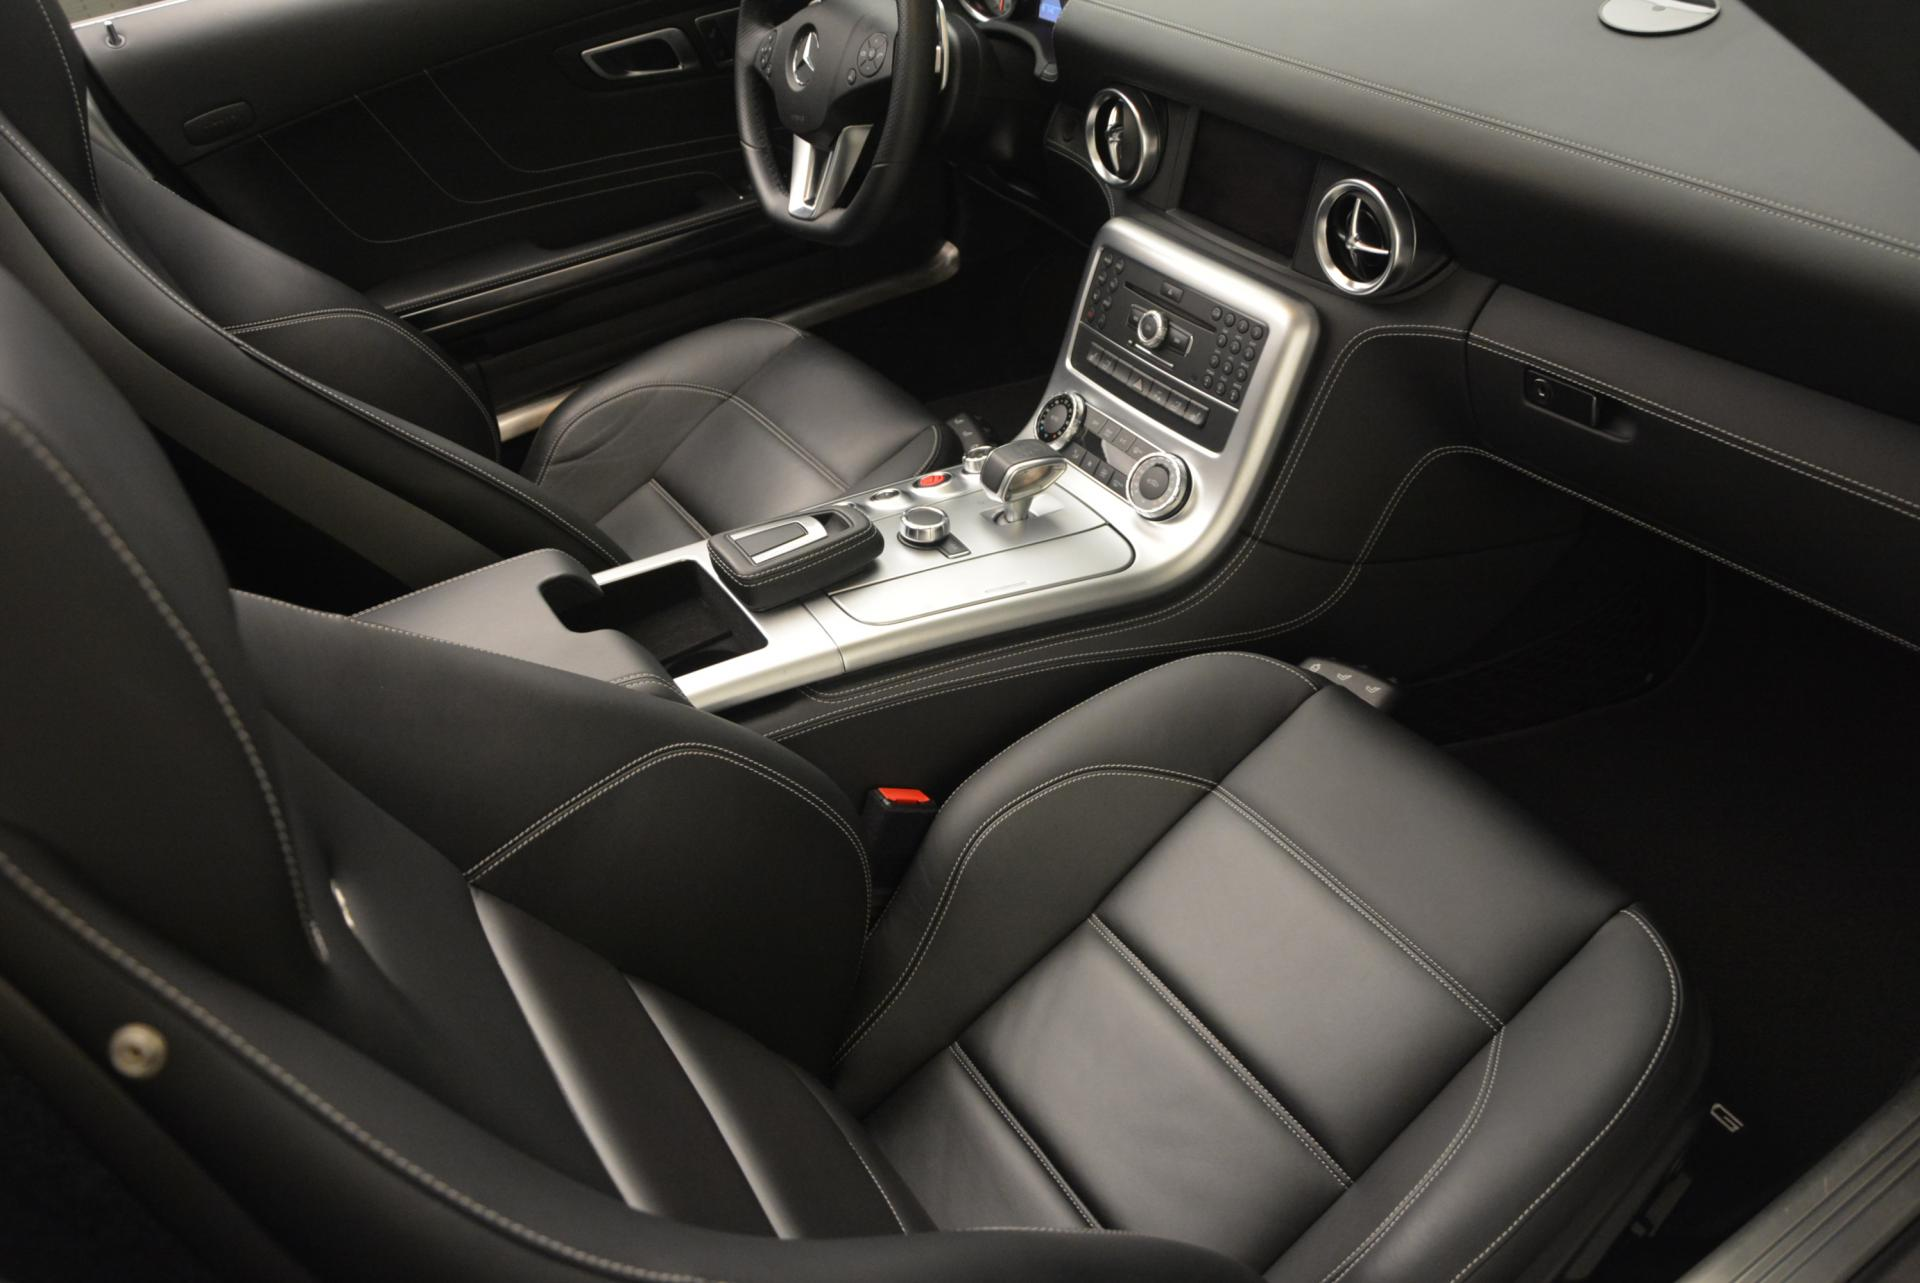 Used 2012 Mercedes Benz SLS AMG  For Sale In Greenwich, CT. Alfa Romeo of Greenwich, 7058 517_p35